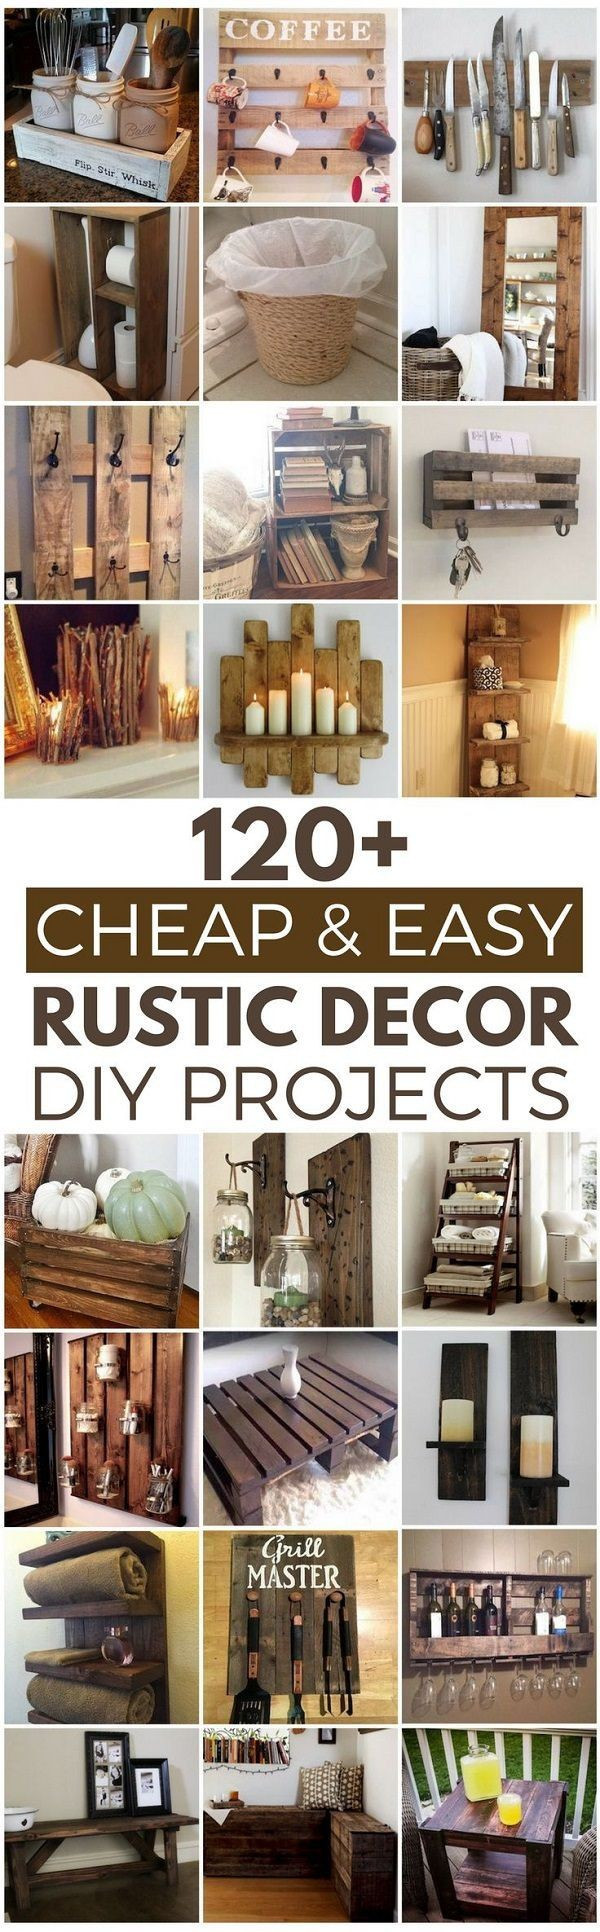 home decor vase fillers of www pinterest home decor new easy home decorating unique 15 cheap with www pinterest home decor new easy home decorating unique 15 cheap and easy diy vase filler